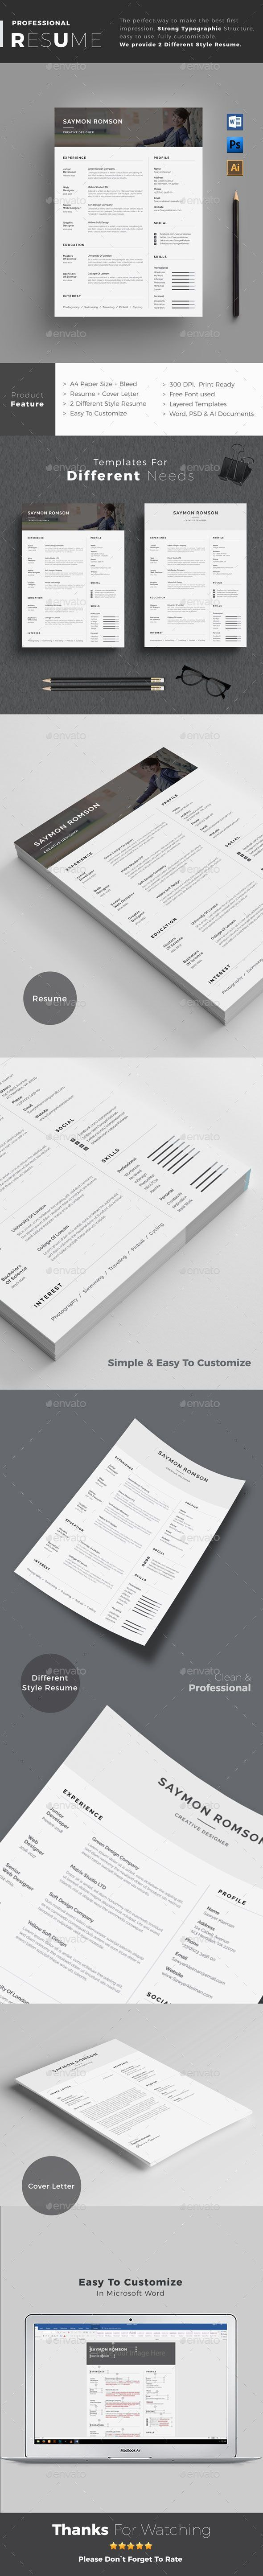 resume format 2015%0A Resume Resume Word Template   CV Template with super clean and modern look   Clean Resume Template page designs are easy to use and customize